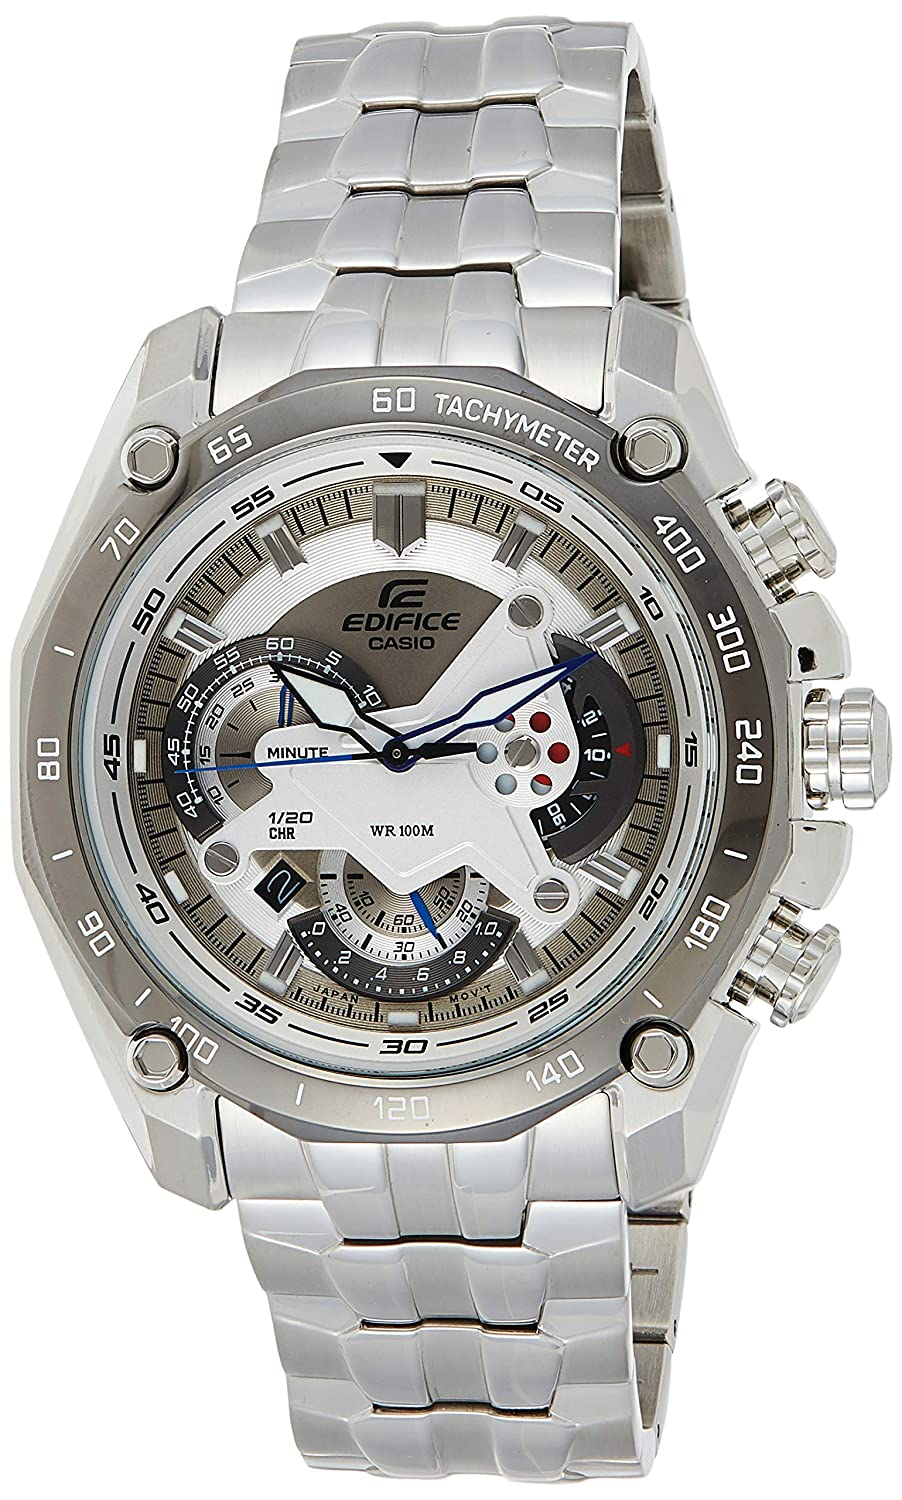 Casio Edifice Tachymeter Chronograph White Dial Men's Watch